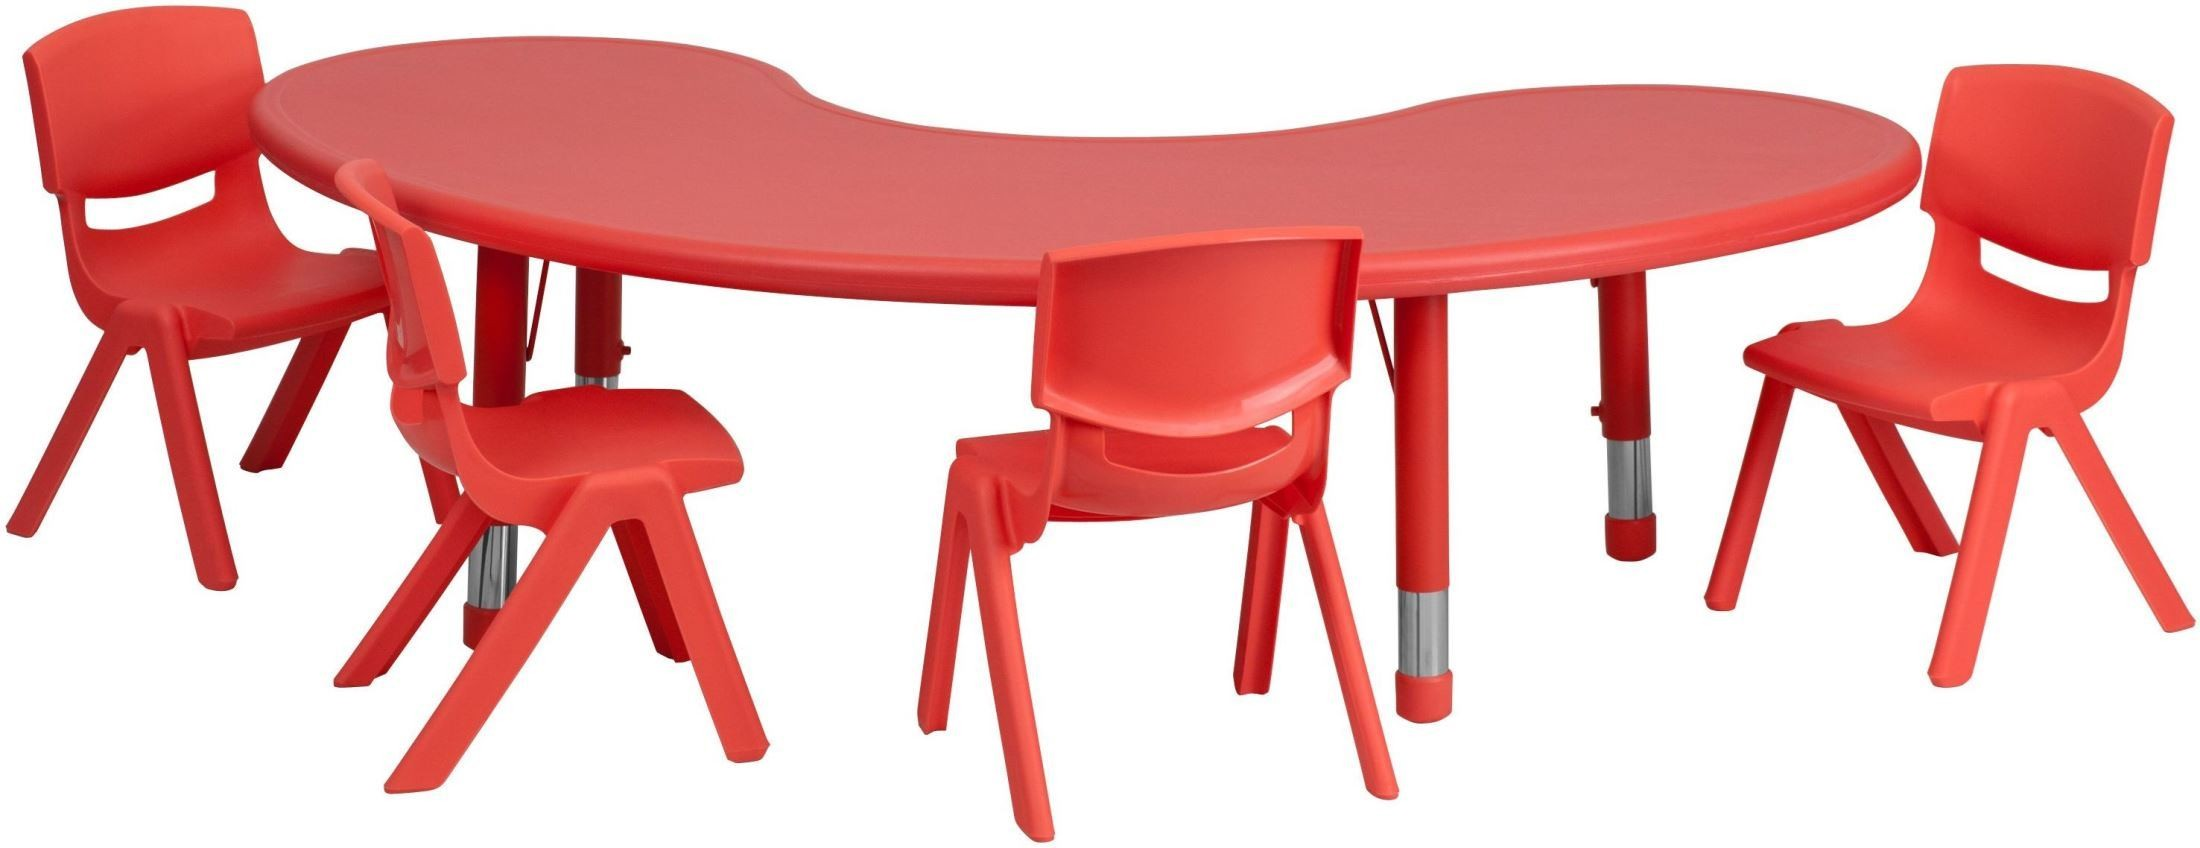 65 adjustable half moon red plastic activity table set for 1 2 moon table